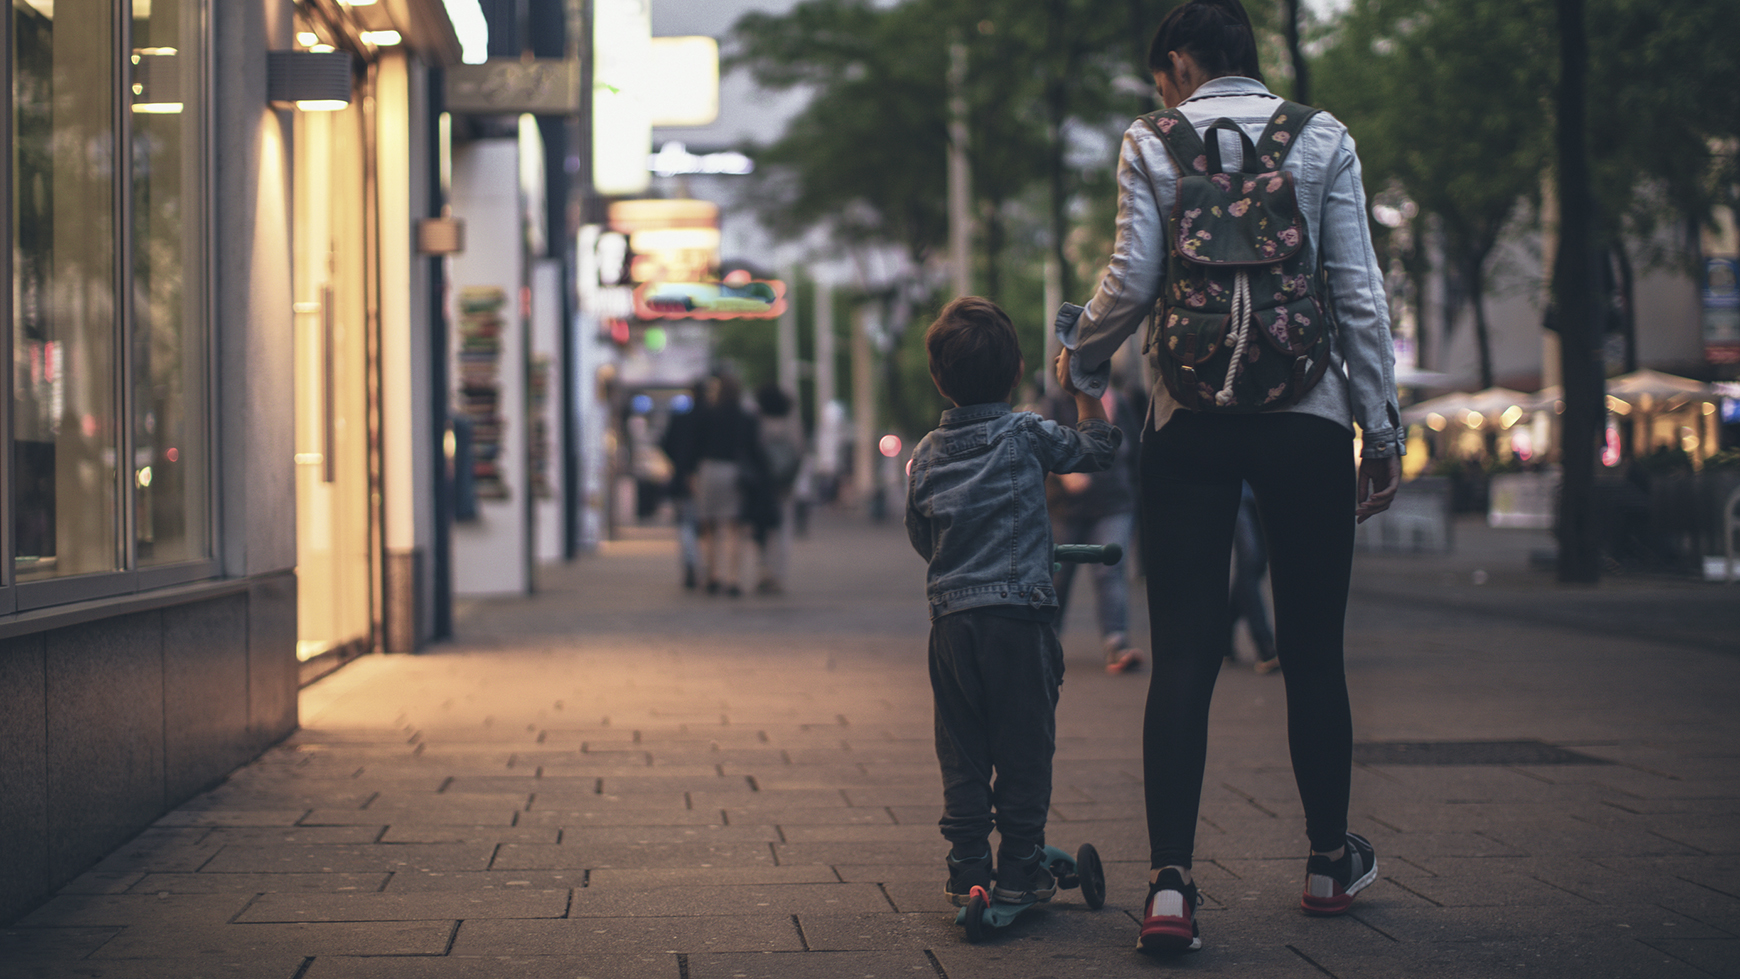 8 Things I Wish People Knew About Parenting a Child With ADHD